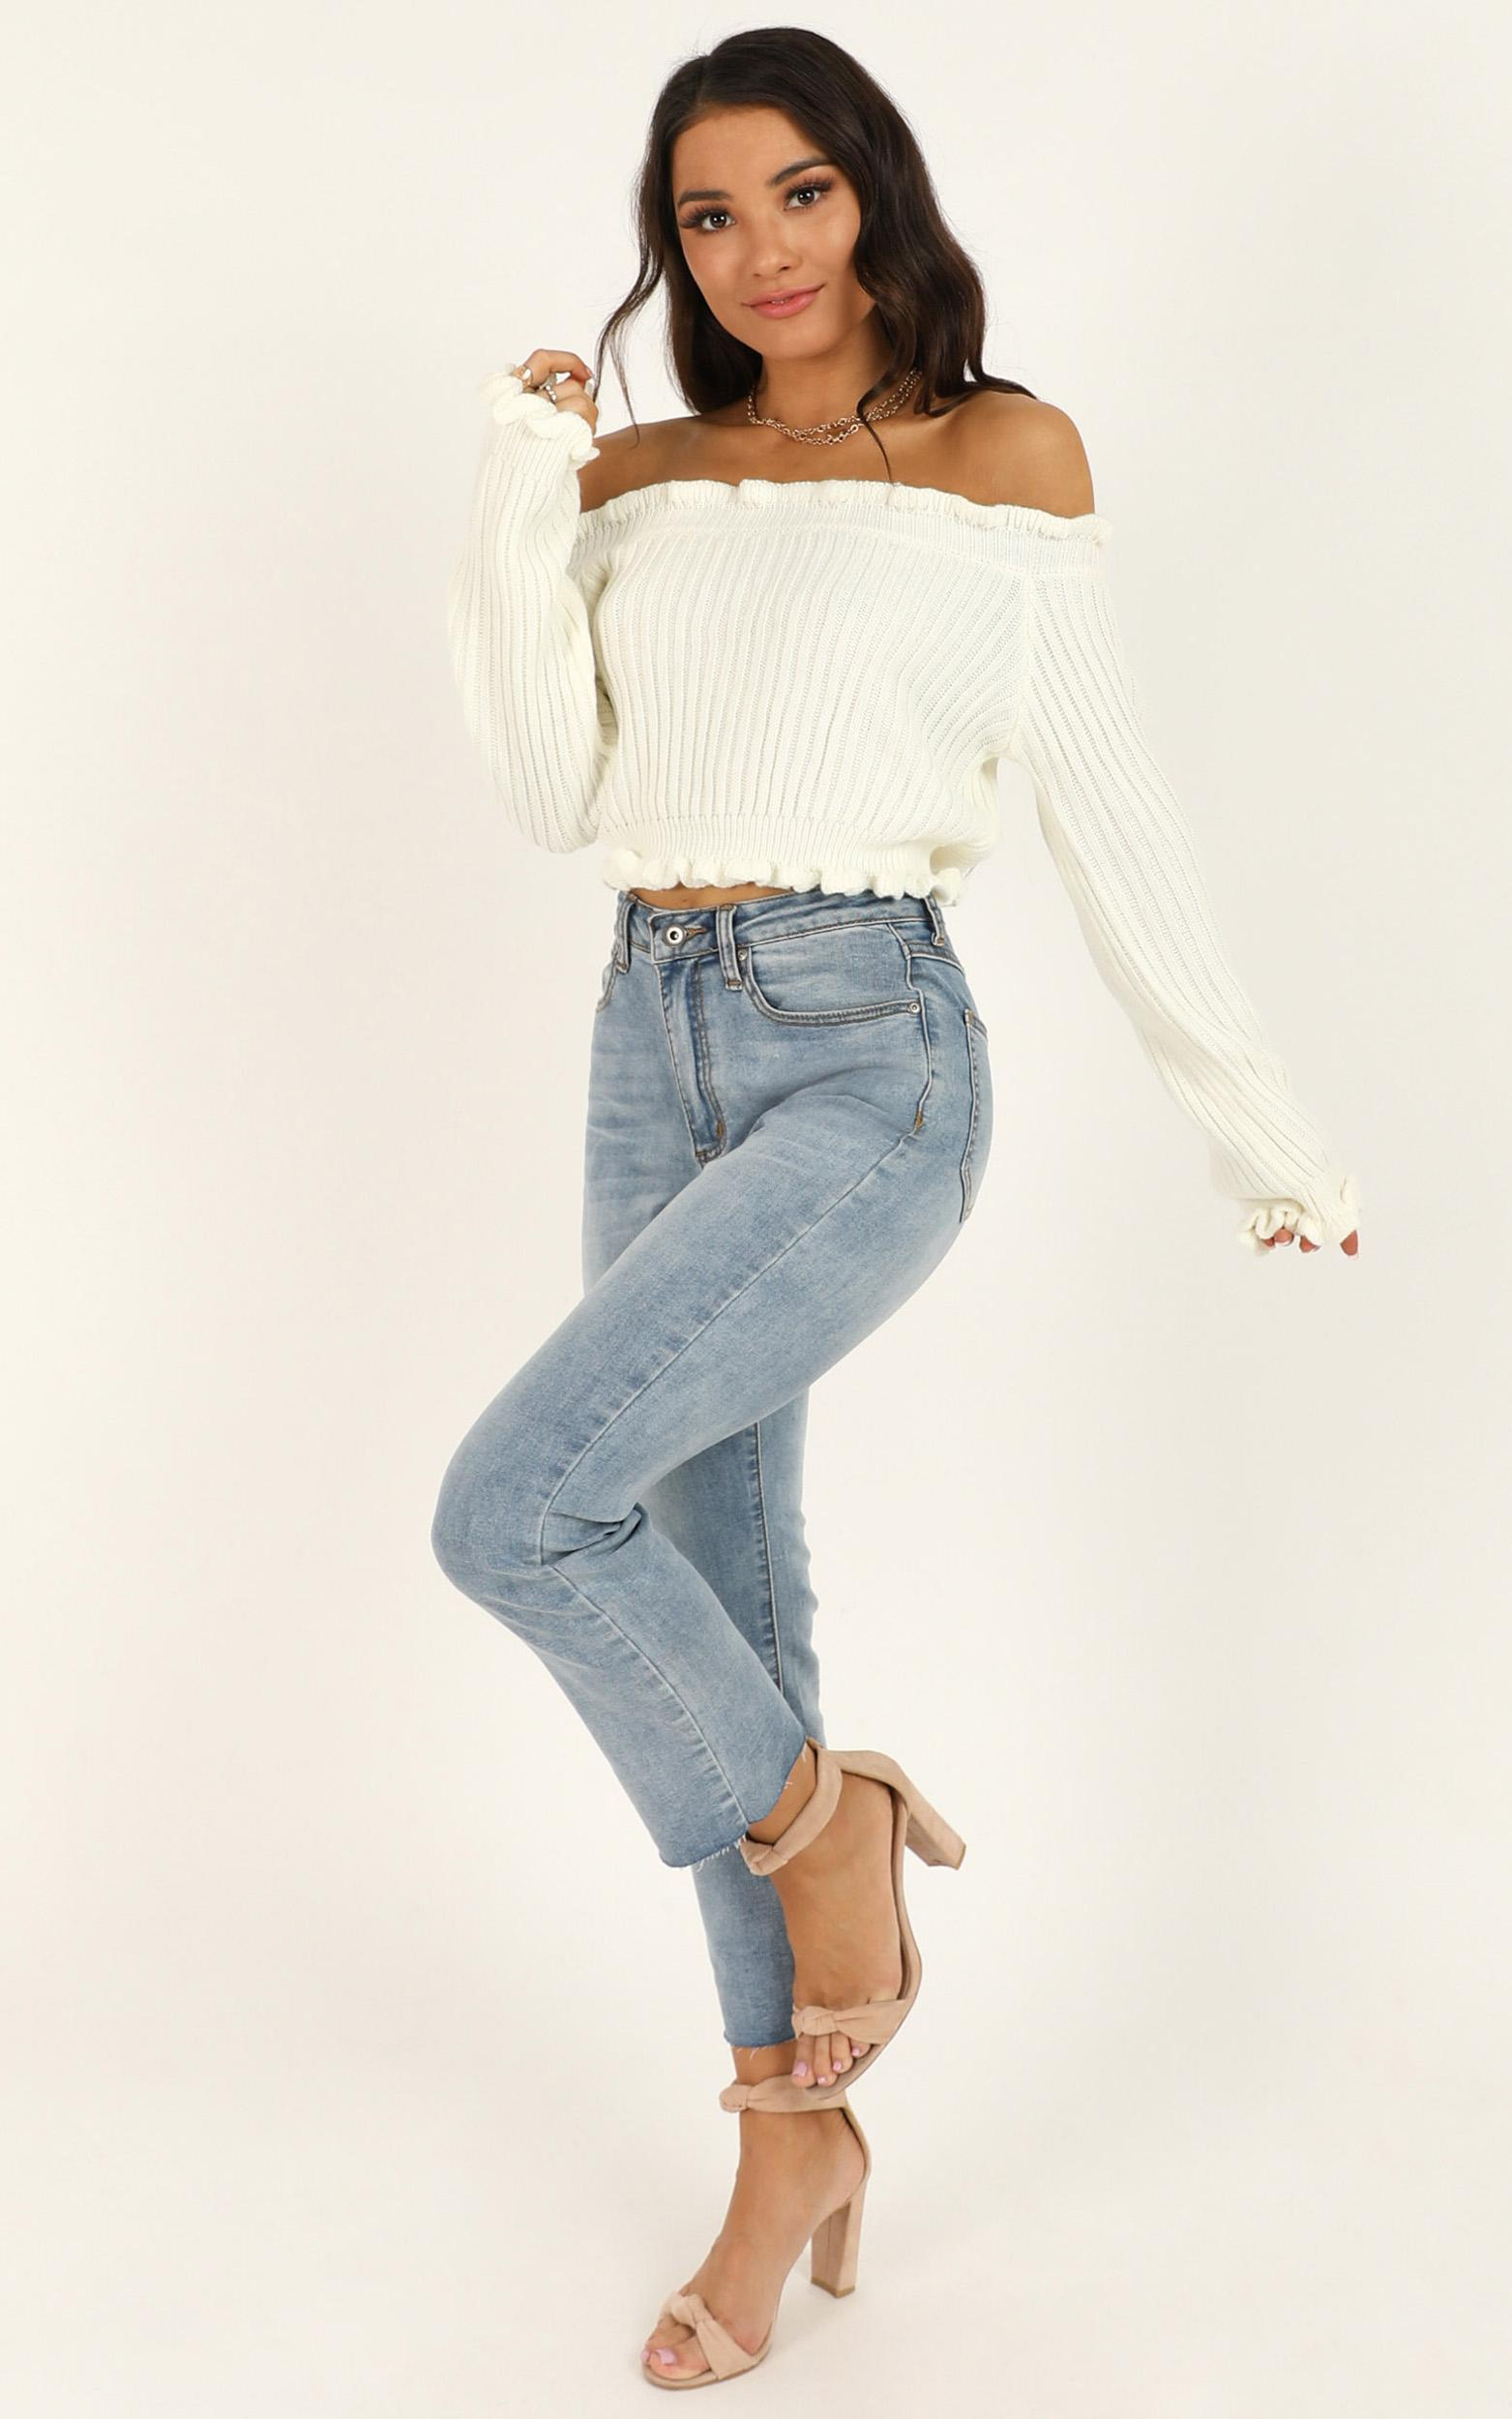 Caught You Staring Knit Jumper in white - 4 (XXS), White, hi-res image number null